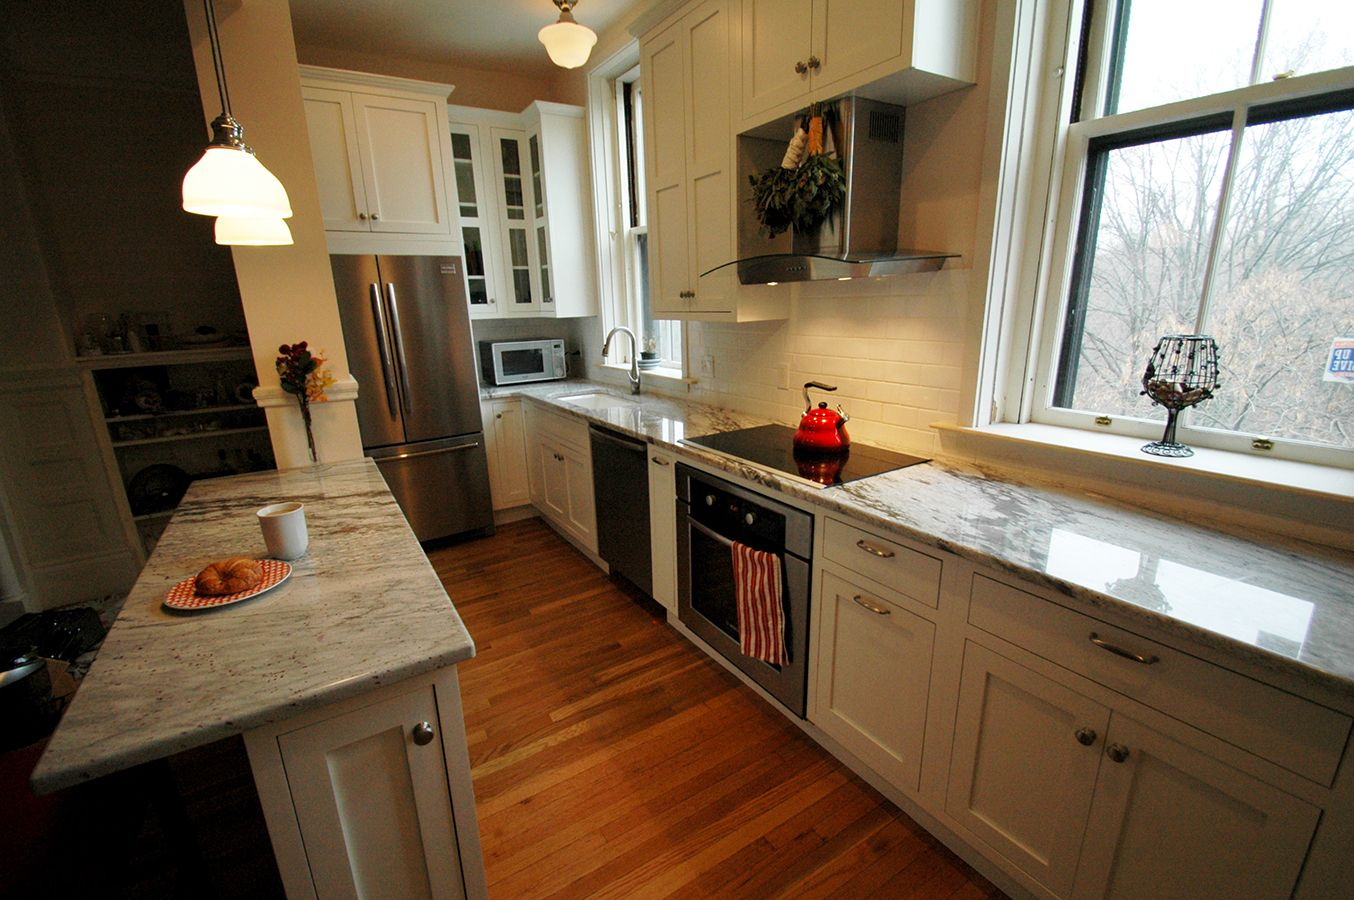 Open Galley Kitchen Designs giving you a kitchen you will love to cook in! call our santa